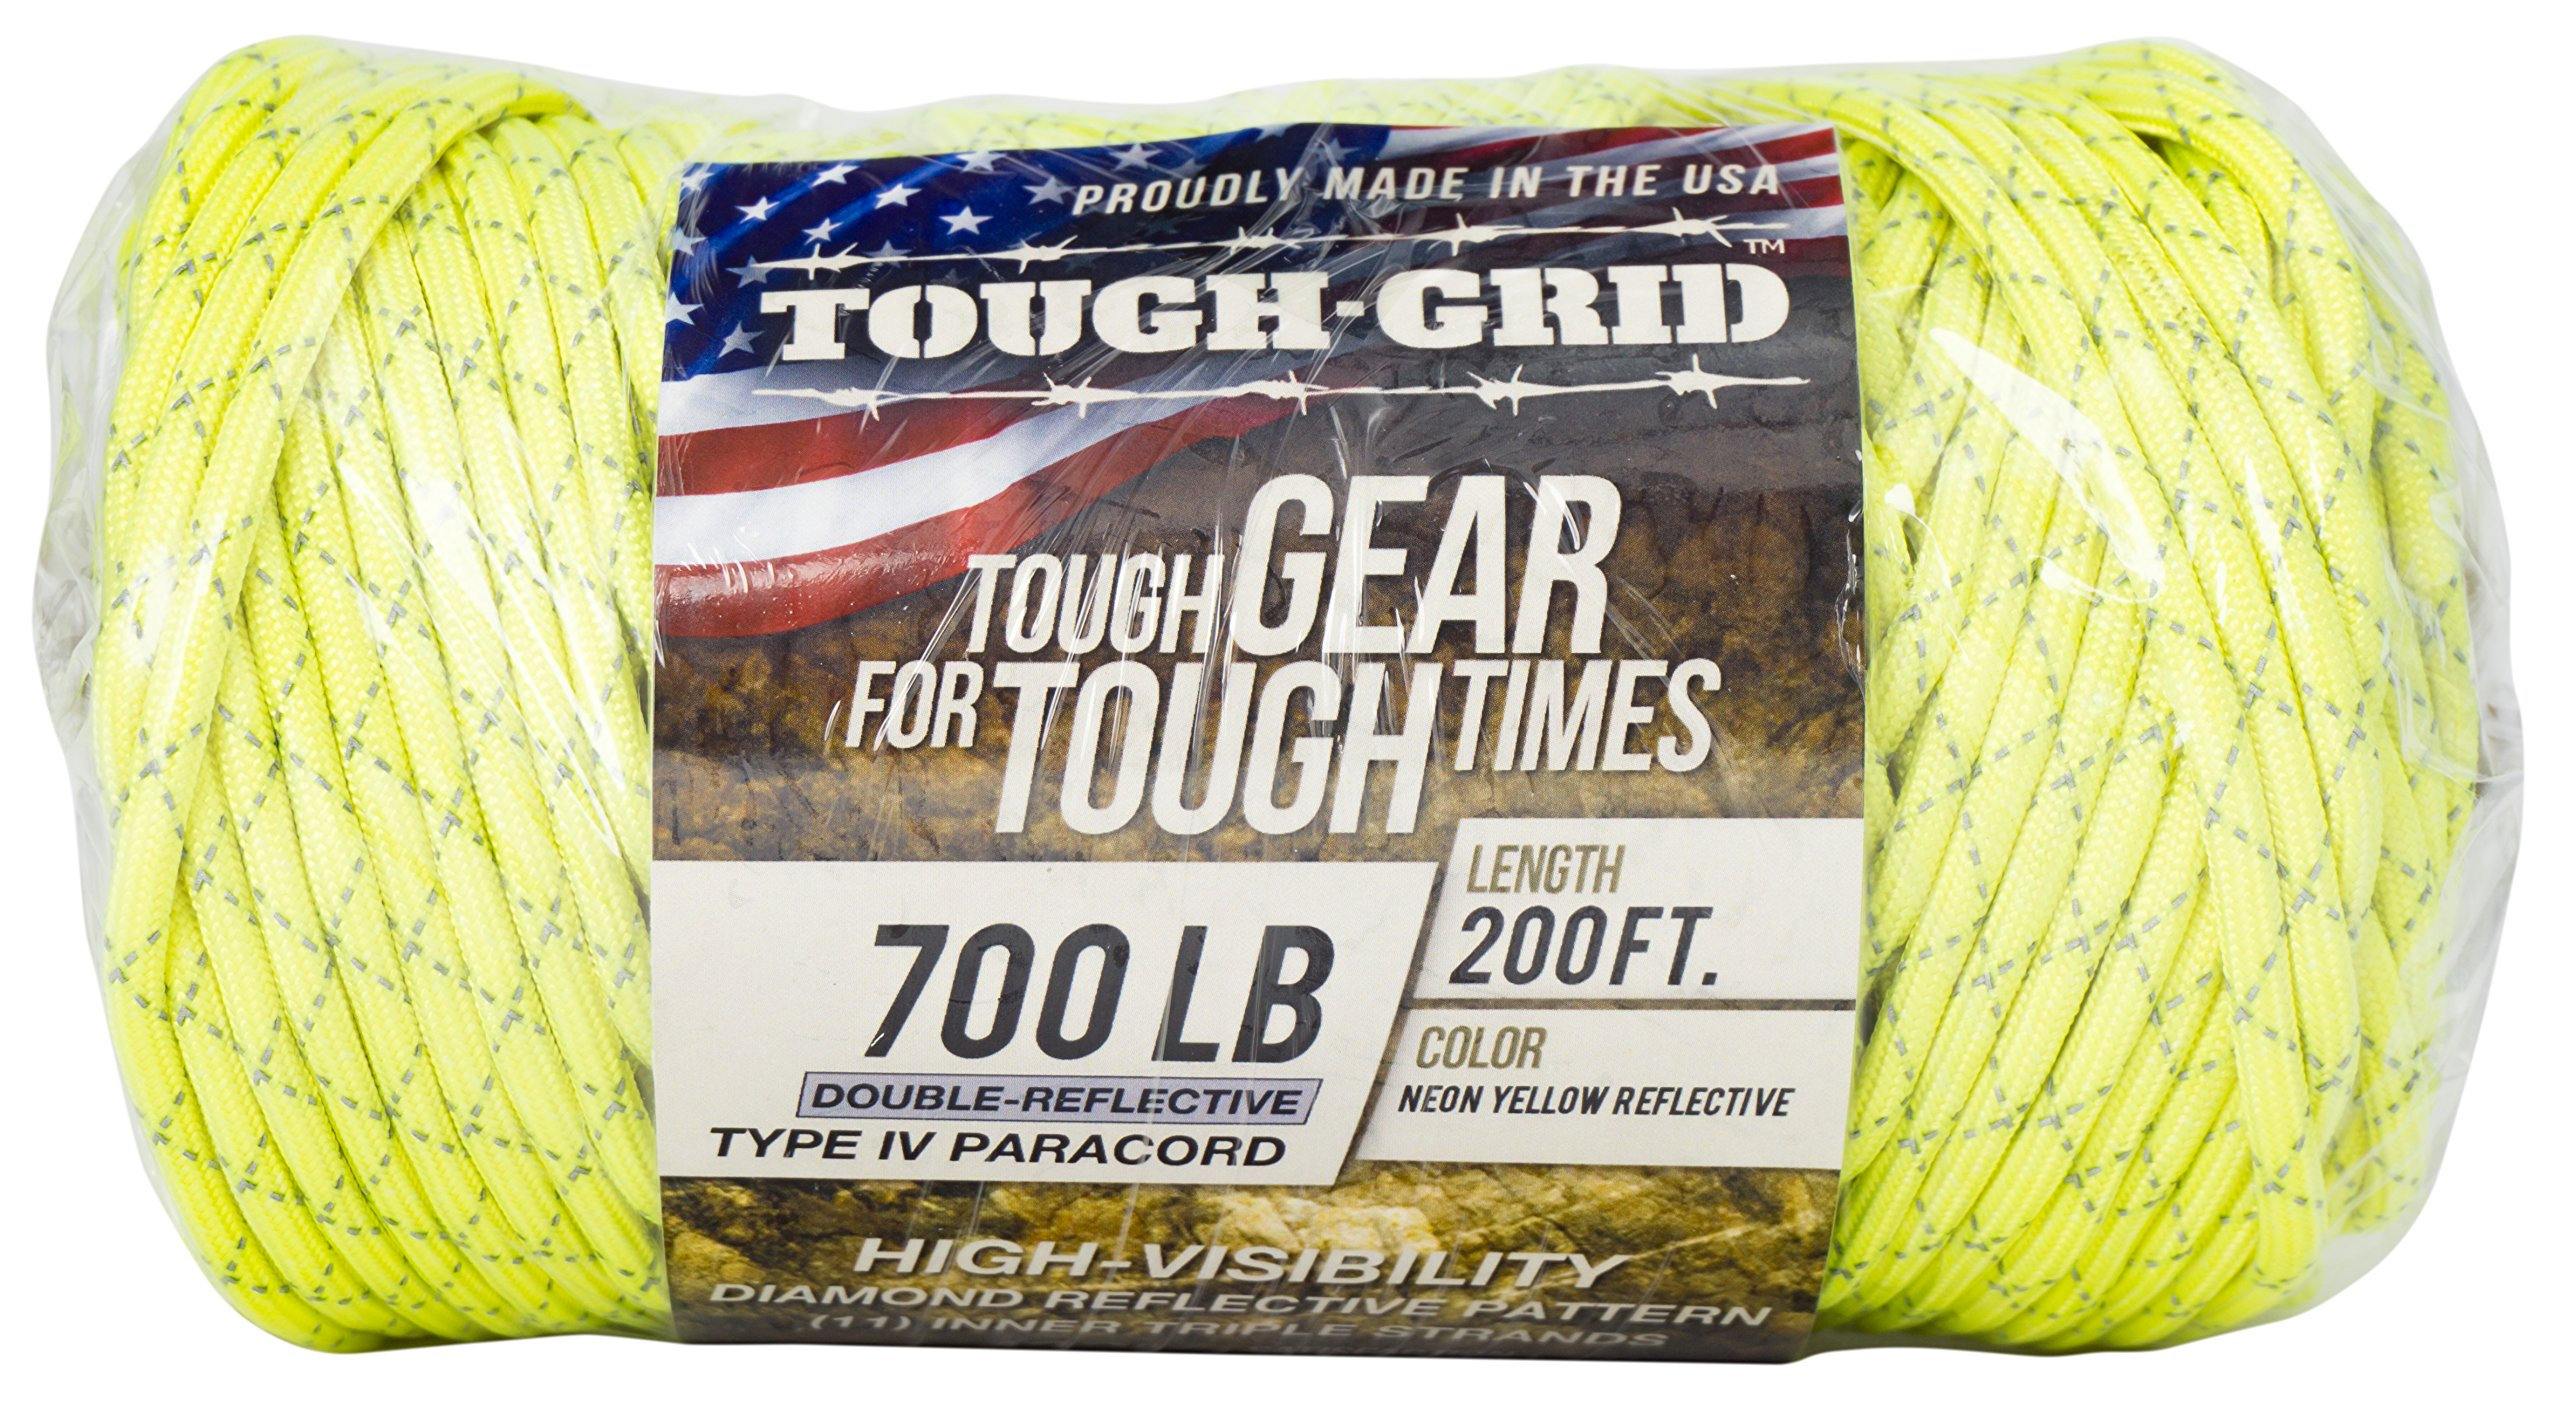 TOUGH-GRID New 700lb Double-Reflective Paracord/Parachute Cord - 2 Vibrant Retro-Reflective Strands for The Ultimate High-Visibility Cord - 100% Nylon - Made in USA - 200Ft. Neon Yellow Reflective by TOUGH-GRID (Image #5)